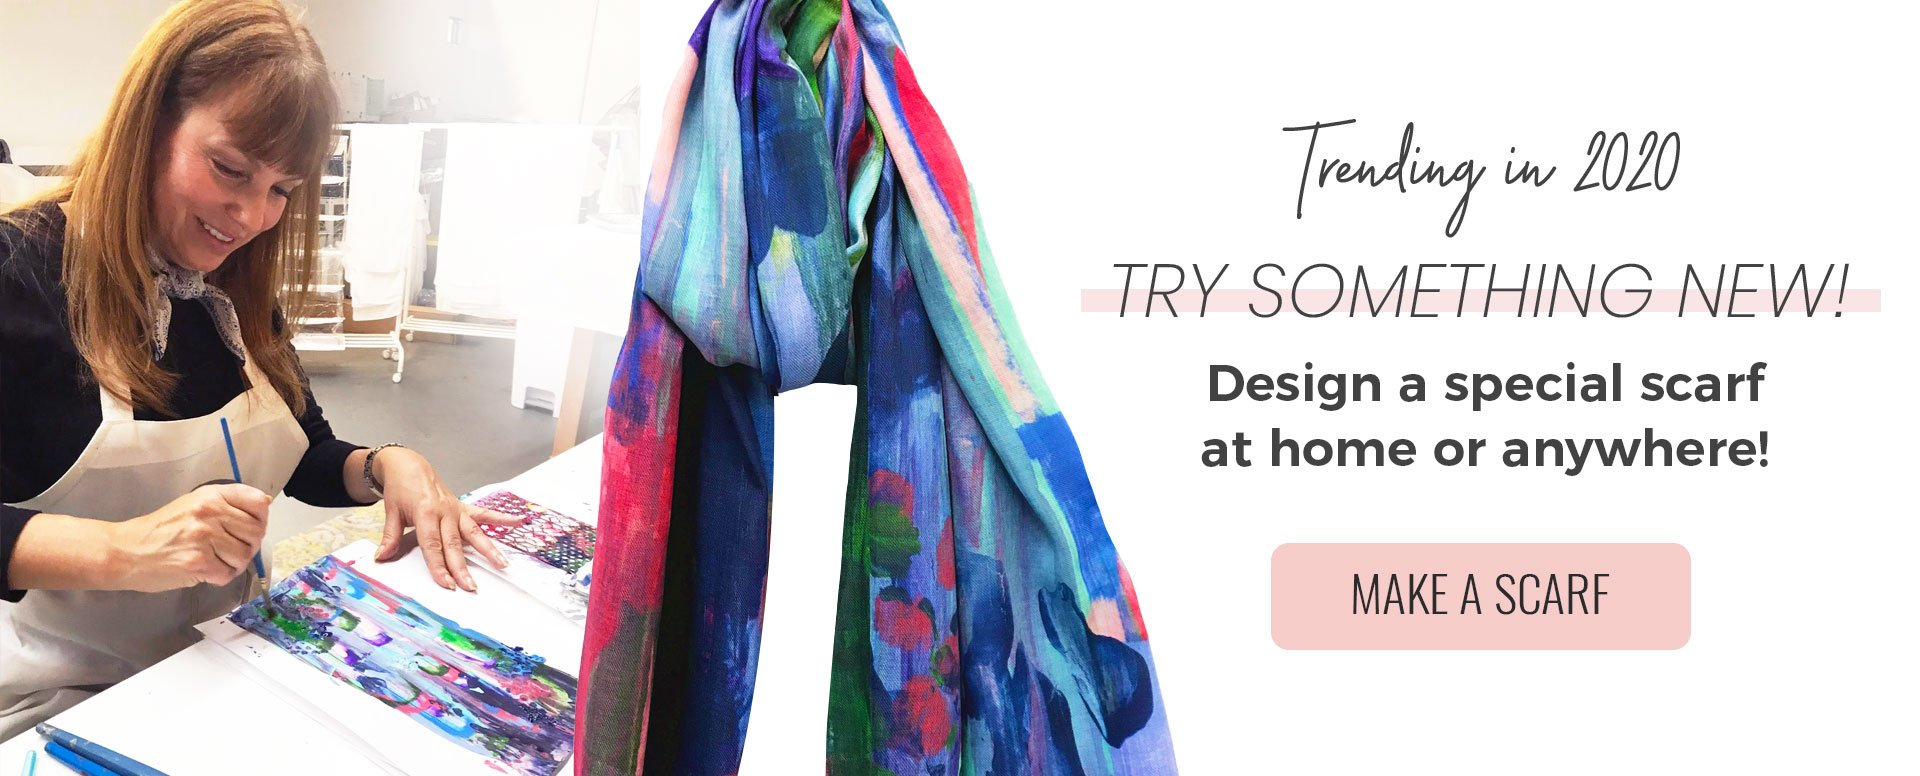 Two easy ways to make your one-of-a-kind scarf.